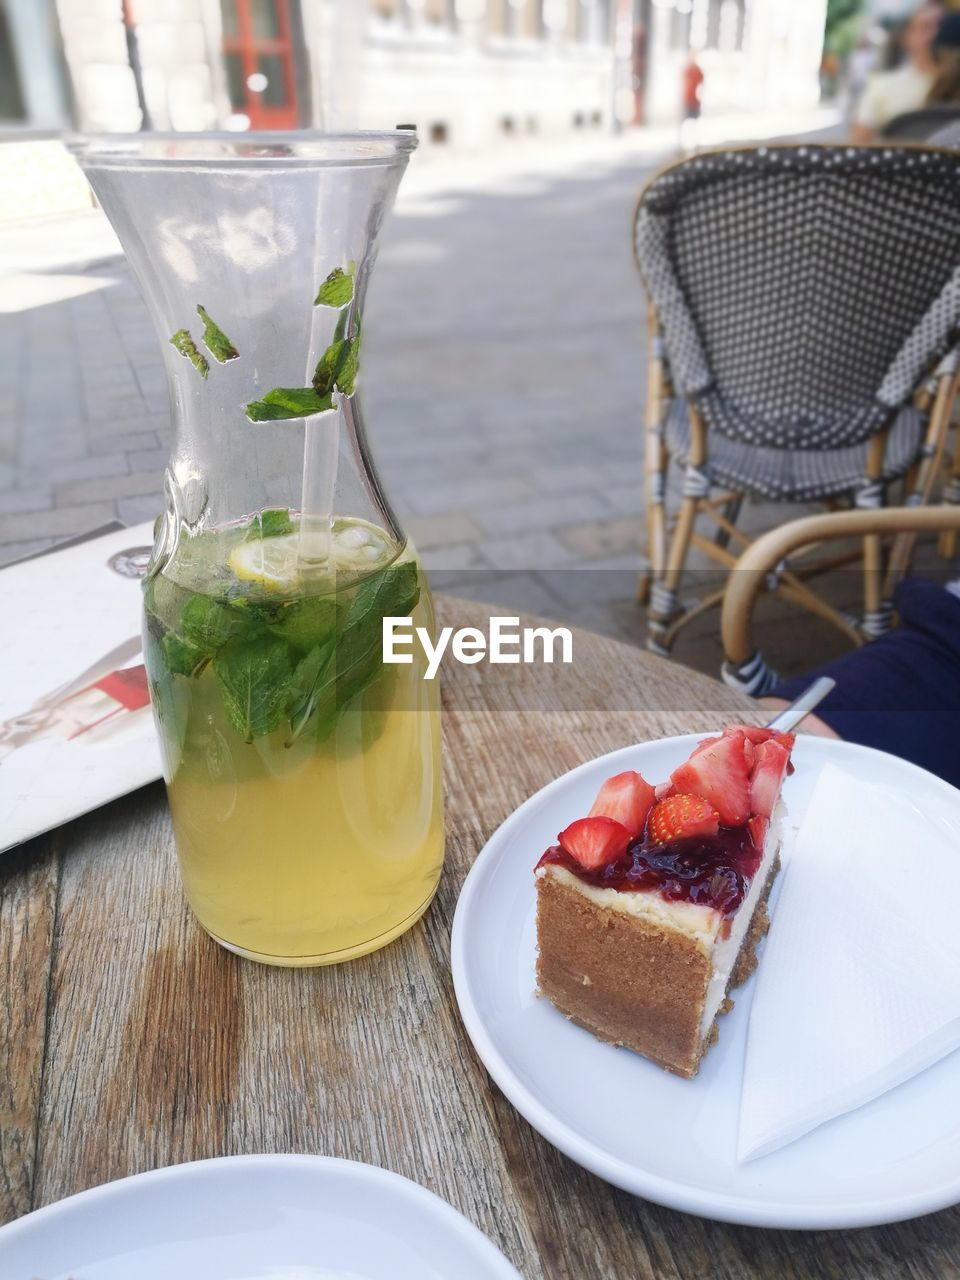 table, food and drink, food, freshness, drink, refreshment, plate, household equipment, still life, serving size, drinking glass, glass, ready-to-eat, no people, wood - material, close-up, indoors, focus on foreground, healthy eating, wellbeing, temptation, herb, mint leaf - culinary